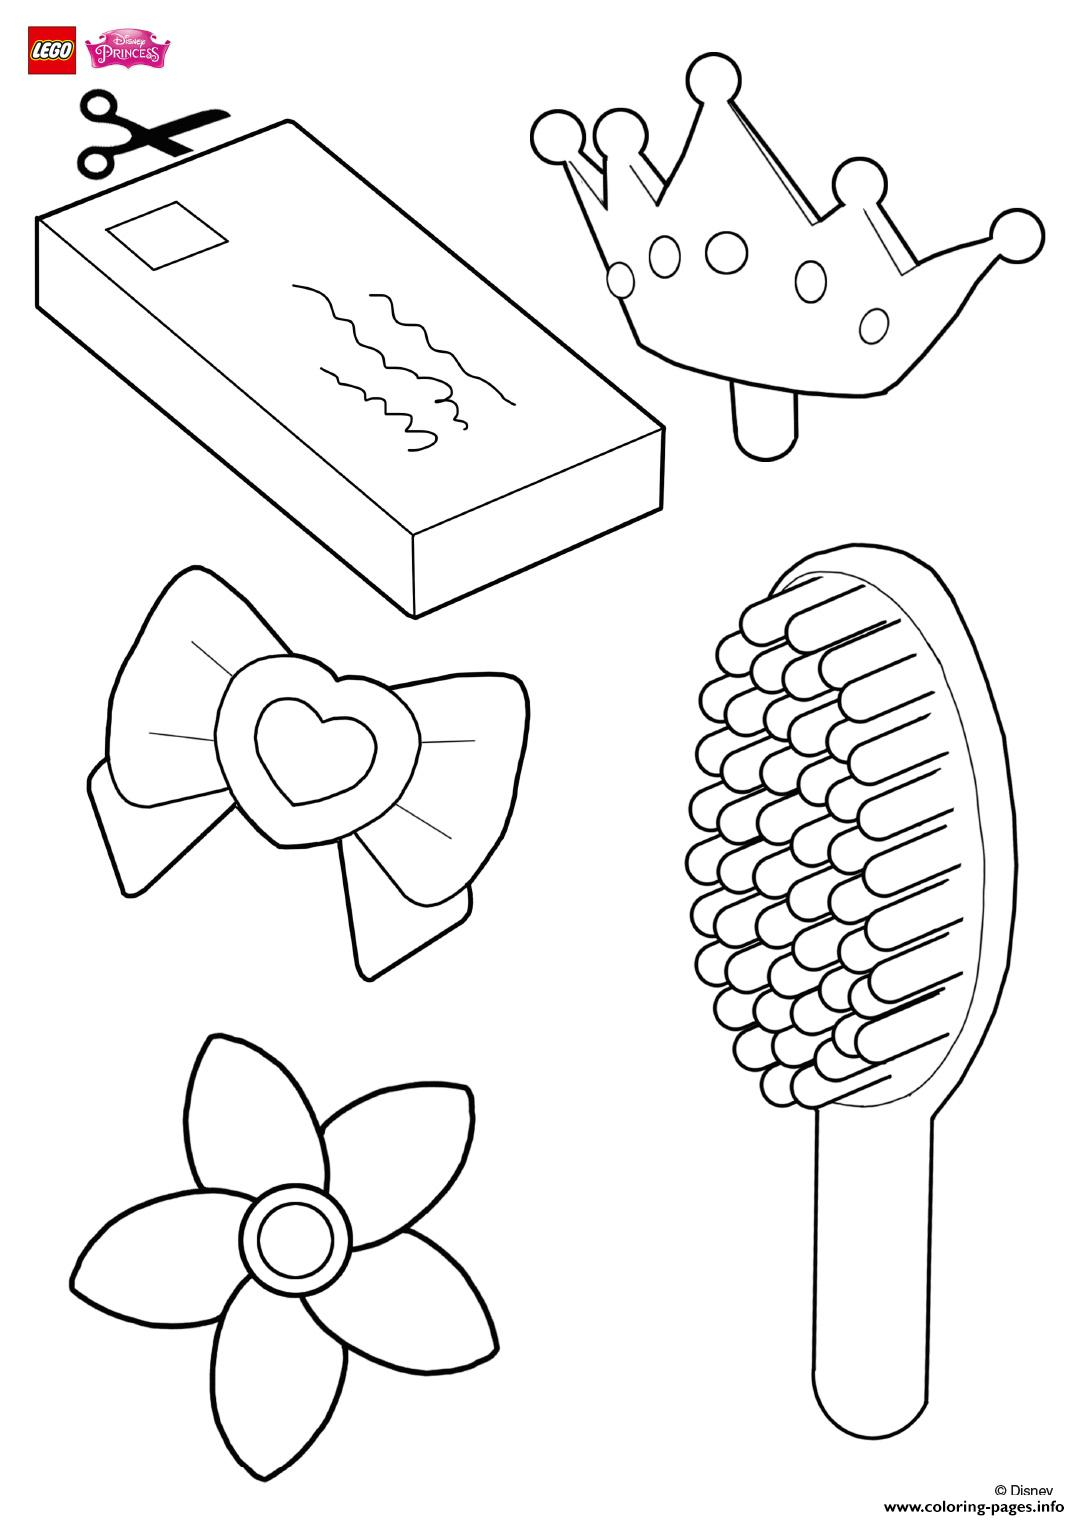 Lego star wars coloring pages free lego star wars coloring pages for - Help Decorate Rapunzels Hair Accessories Lego Disney